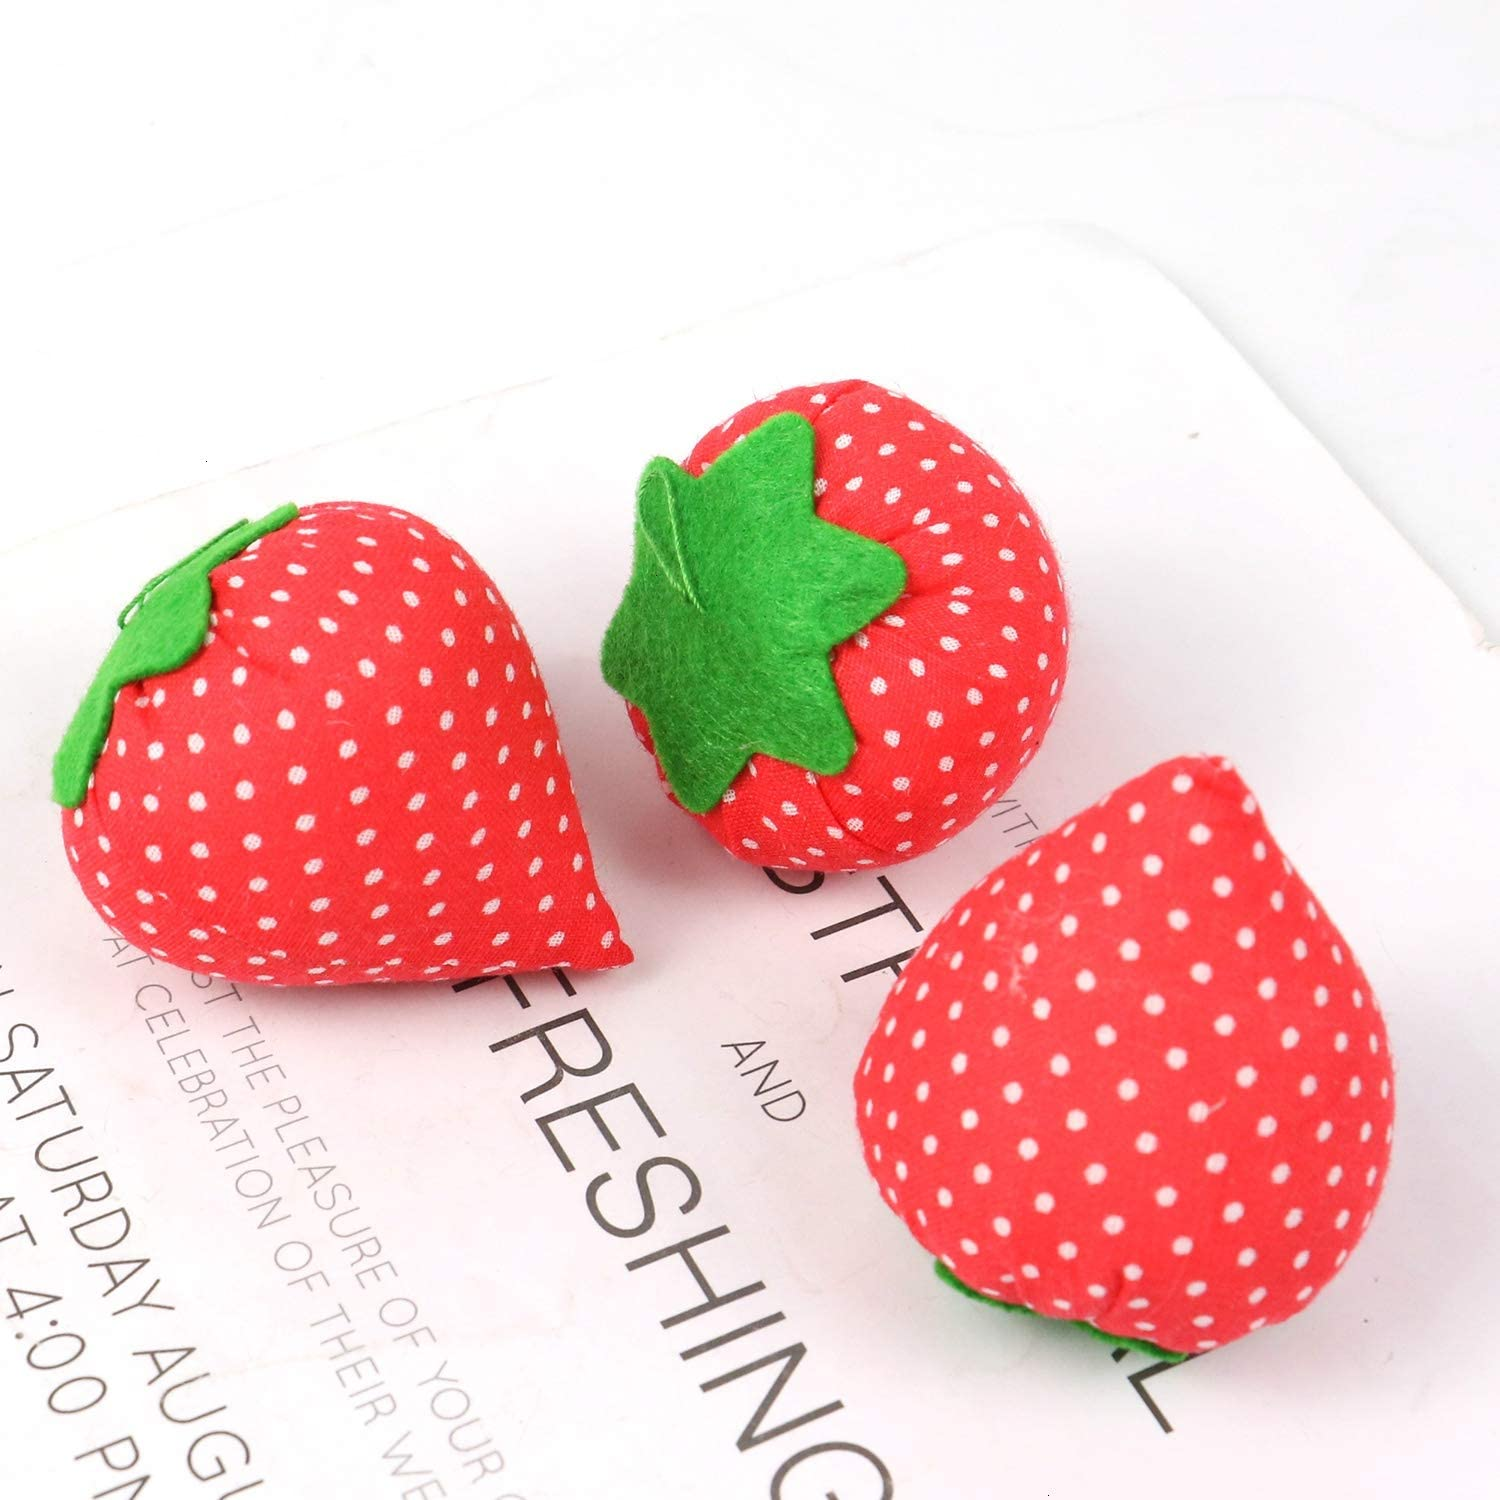 Strawberry Sewing Needle Pin Cushion for Sewing. WEFOO 5pcs Pin Cushion